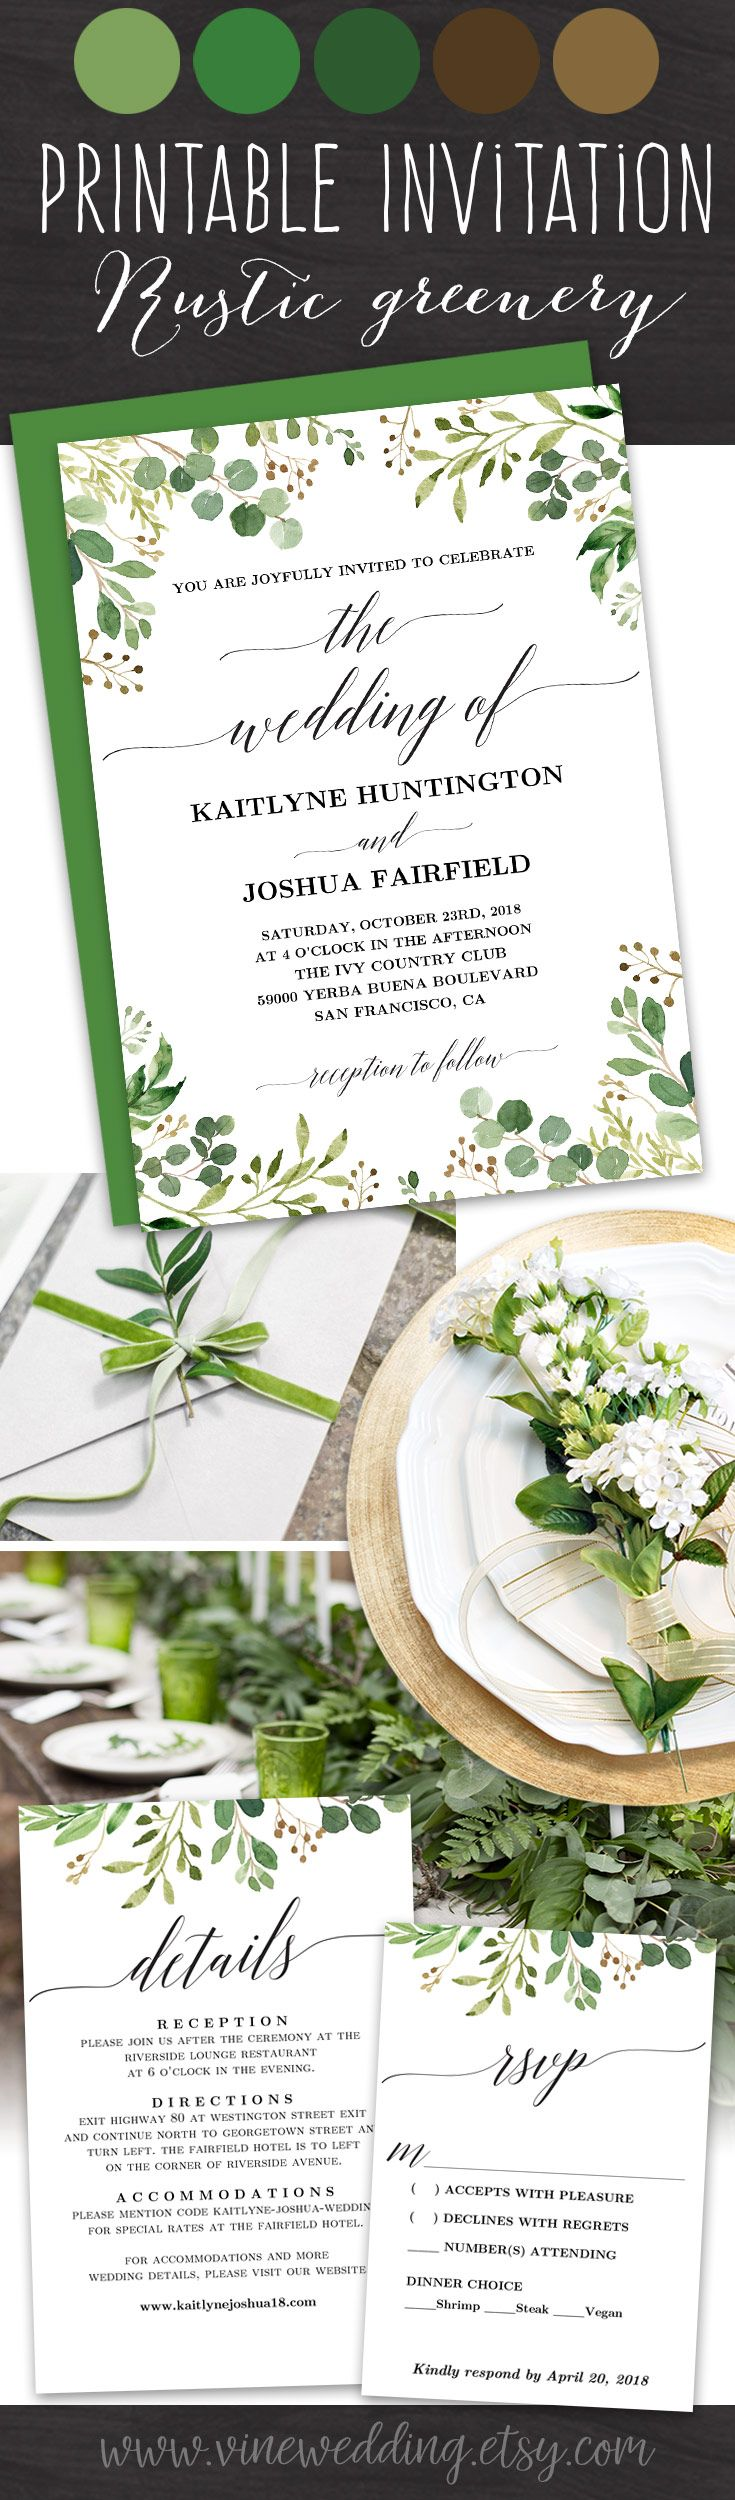 "Like leaves and font at top.  Prefer more muted colors.  Less greenery on the invitation.  Don't like the ""wedding of"" in script"